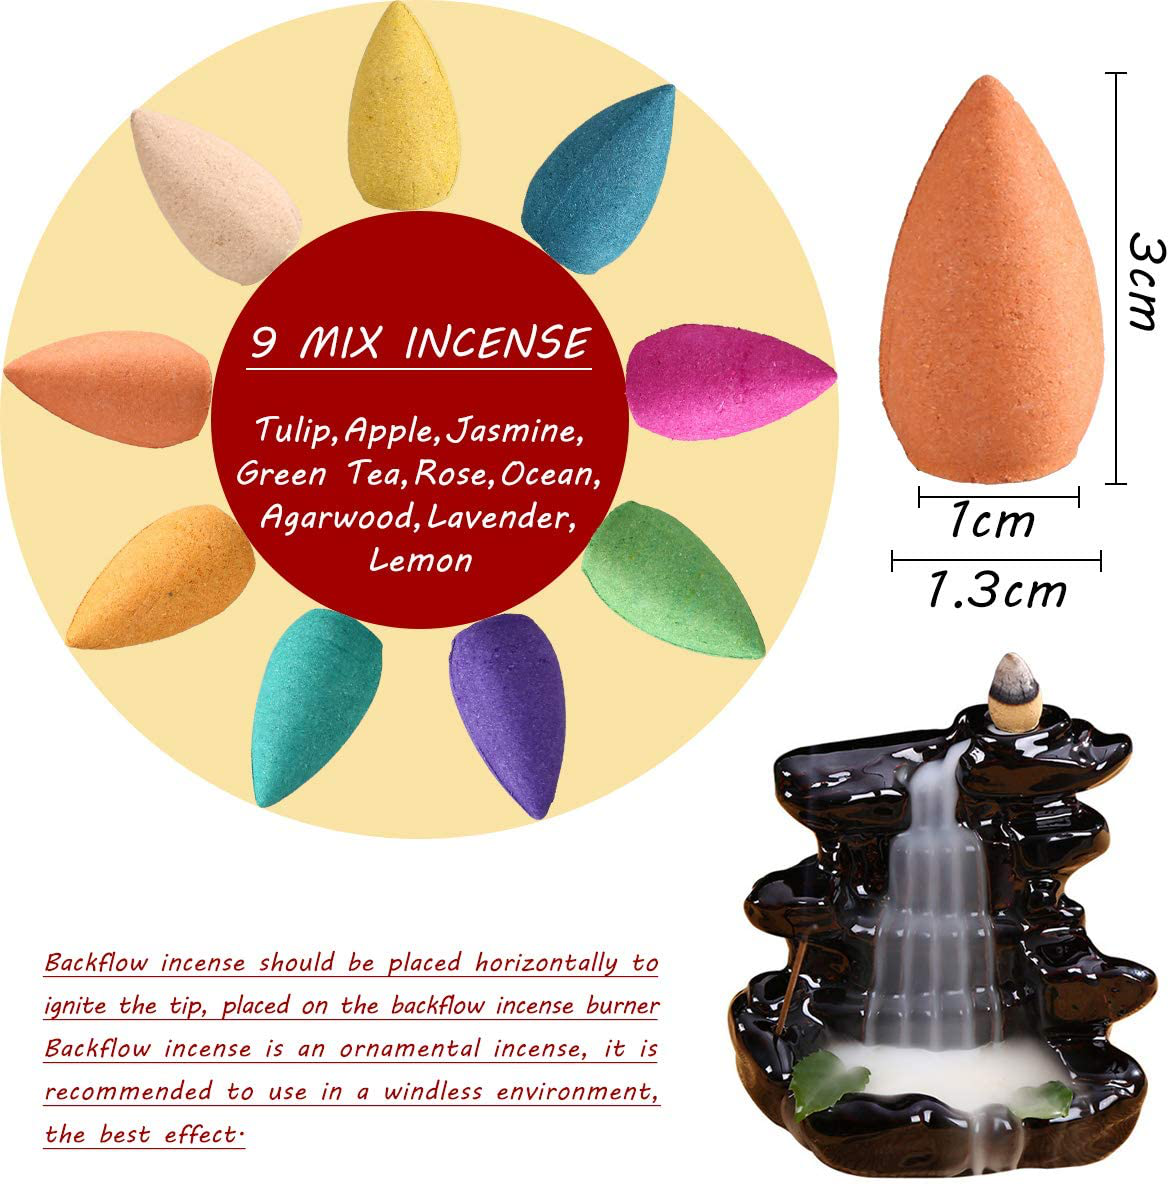 OTOFY Backflow Incense Cones 360 Pcs of 100% Natural Scents Waterfall Incense Rose Tulip Jasmine Lavender Rose for Backflow Incense Burner Holder Natural | Meditation & Yoga Gift